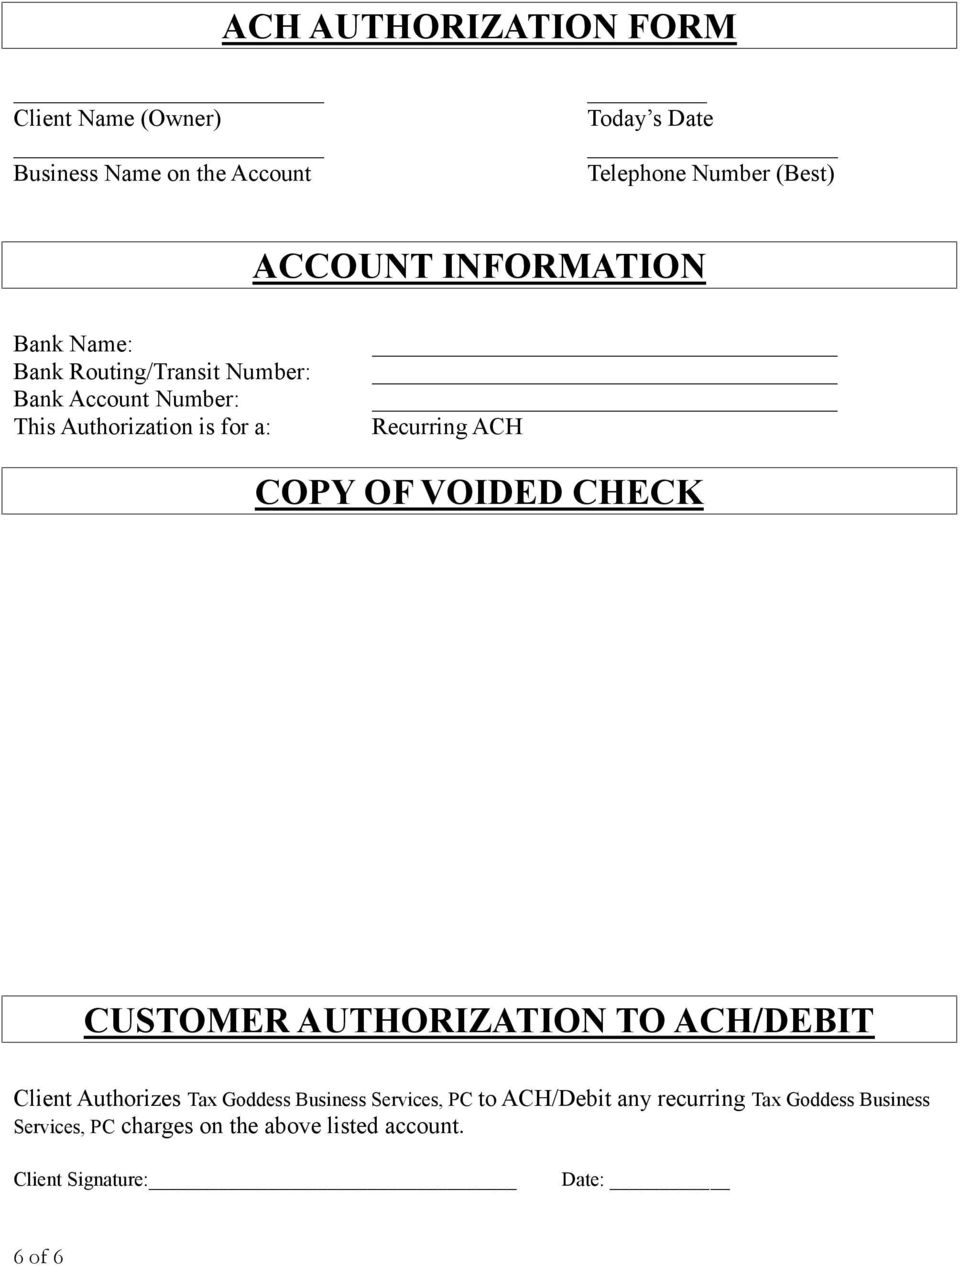 COPY OF VOIDED CHECK CUSTOMER AUTHORIZATION TO ACH/DEBIT Client Authrizes Tax Gddess Business Services, PC t